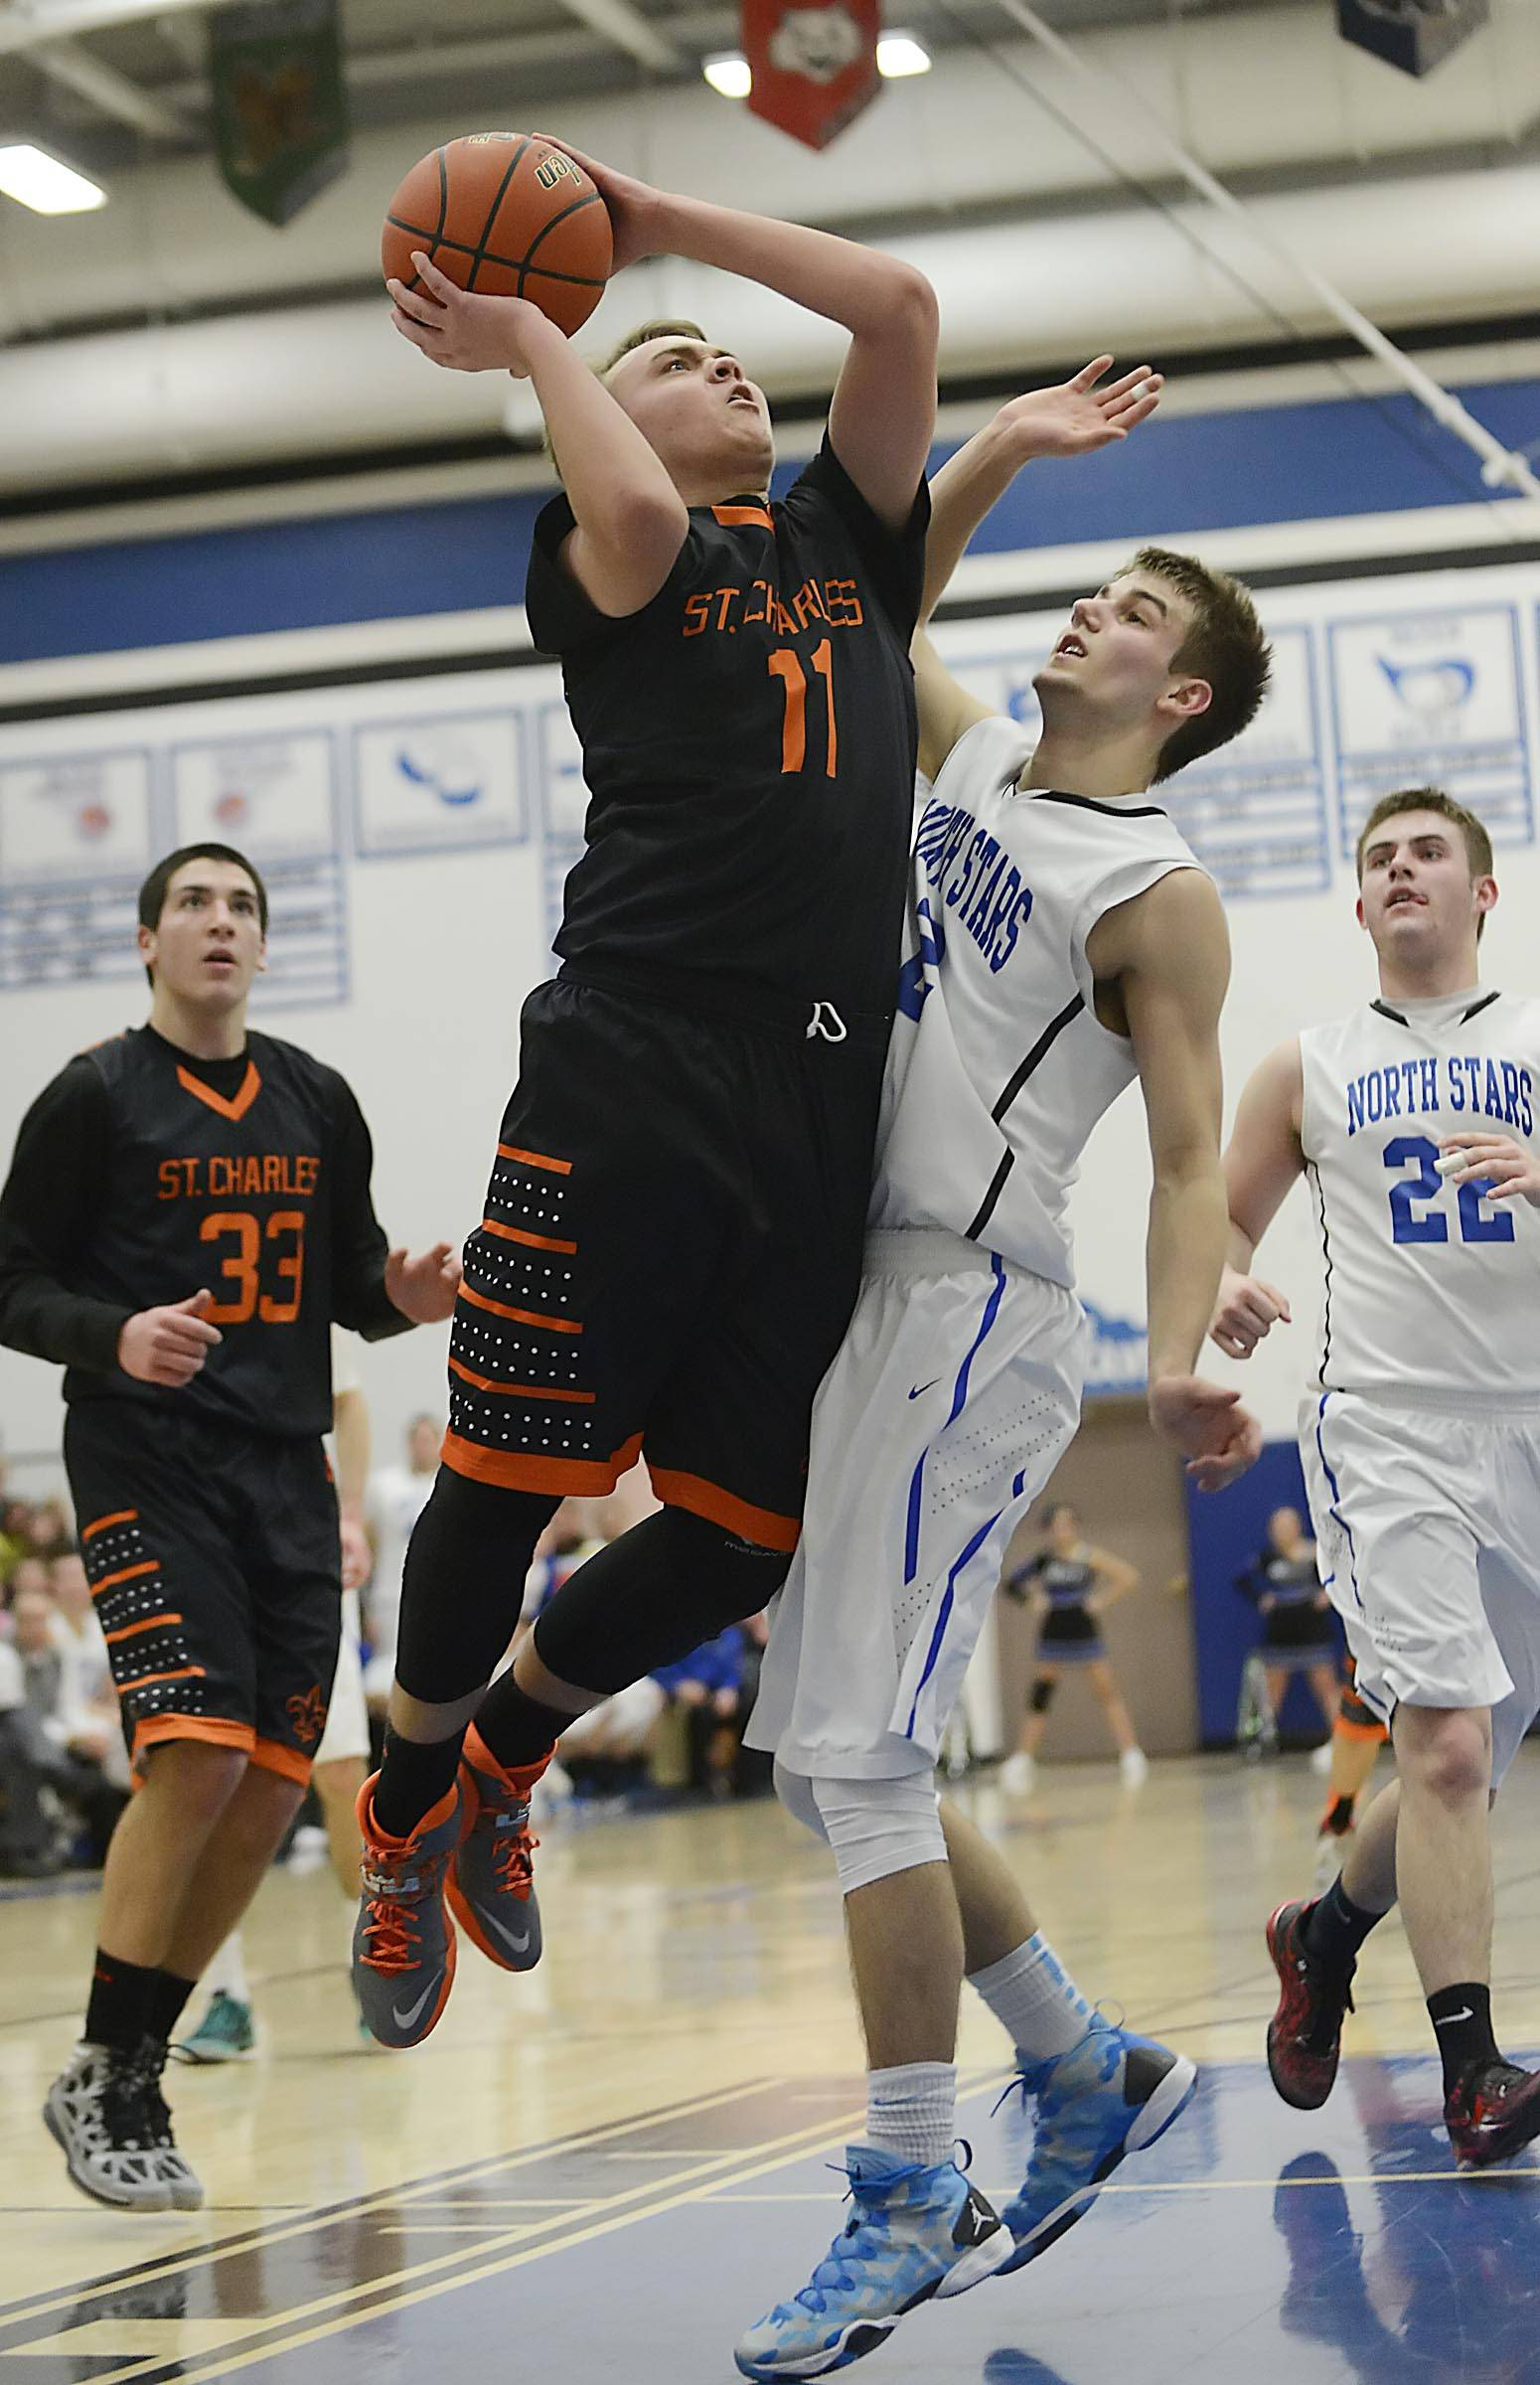 St. Charles East's Mick Vyzral puts up a jump shot against St. Charles North's Jake Ludwig Wednesday in the regional game at St. Charles North.